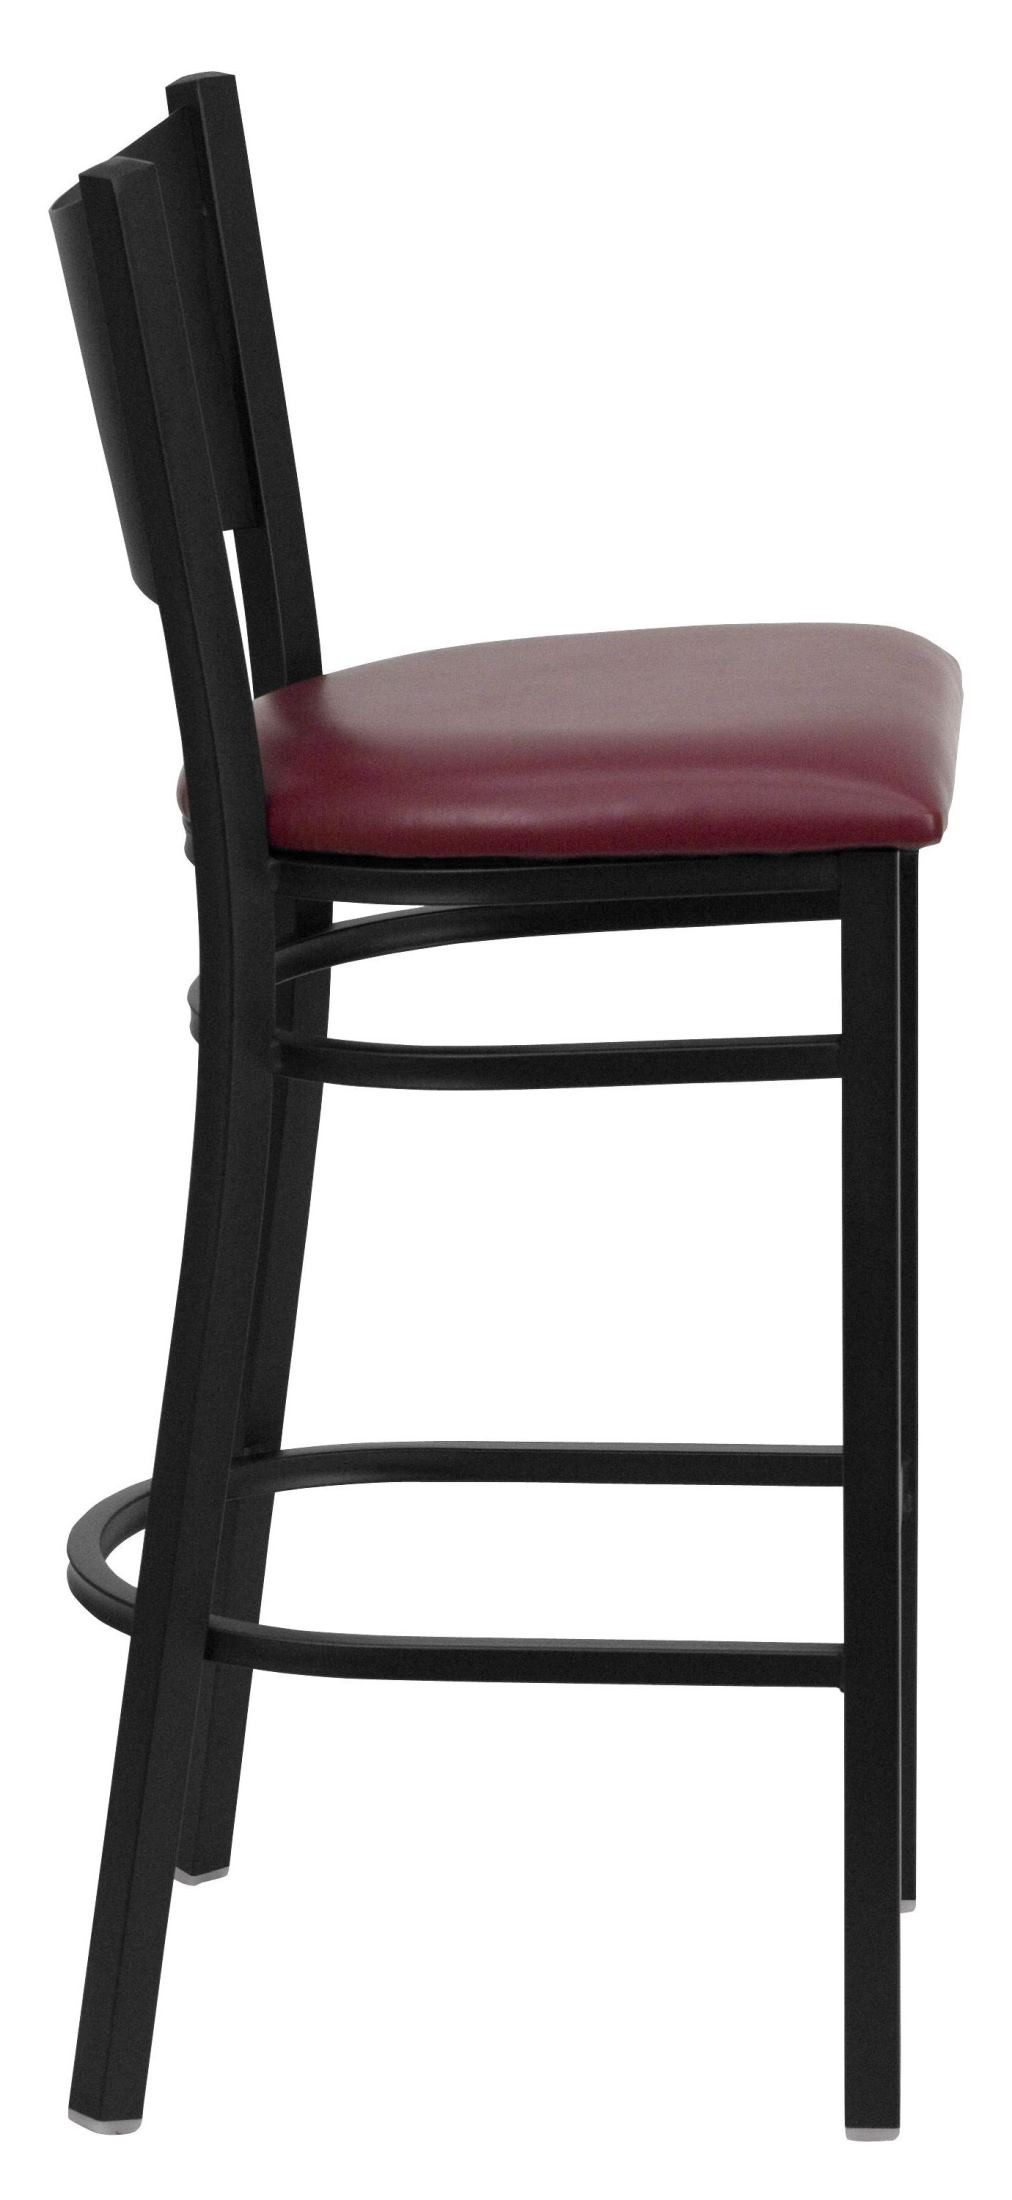 Hercules Series Black Coffee Metal Burgundy Vinyl  : xu dg 60114 cof bar burv gginset1 from colemanfurniture.com size 1012 x 2200 jpeg 145kB